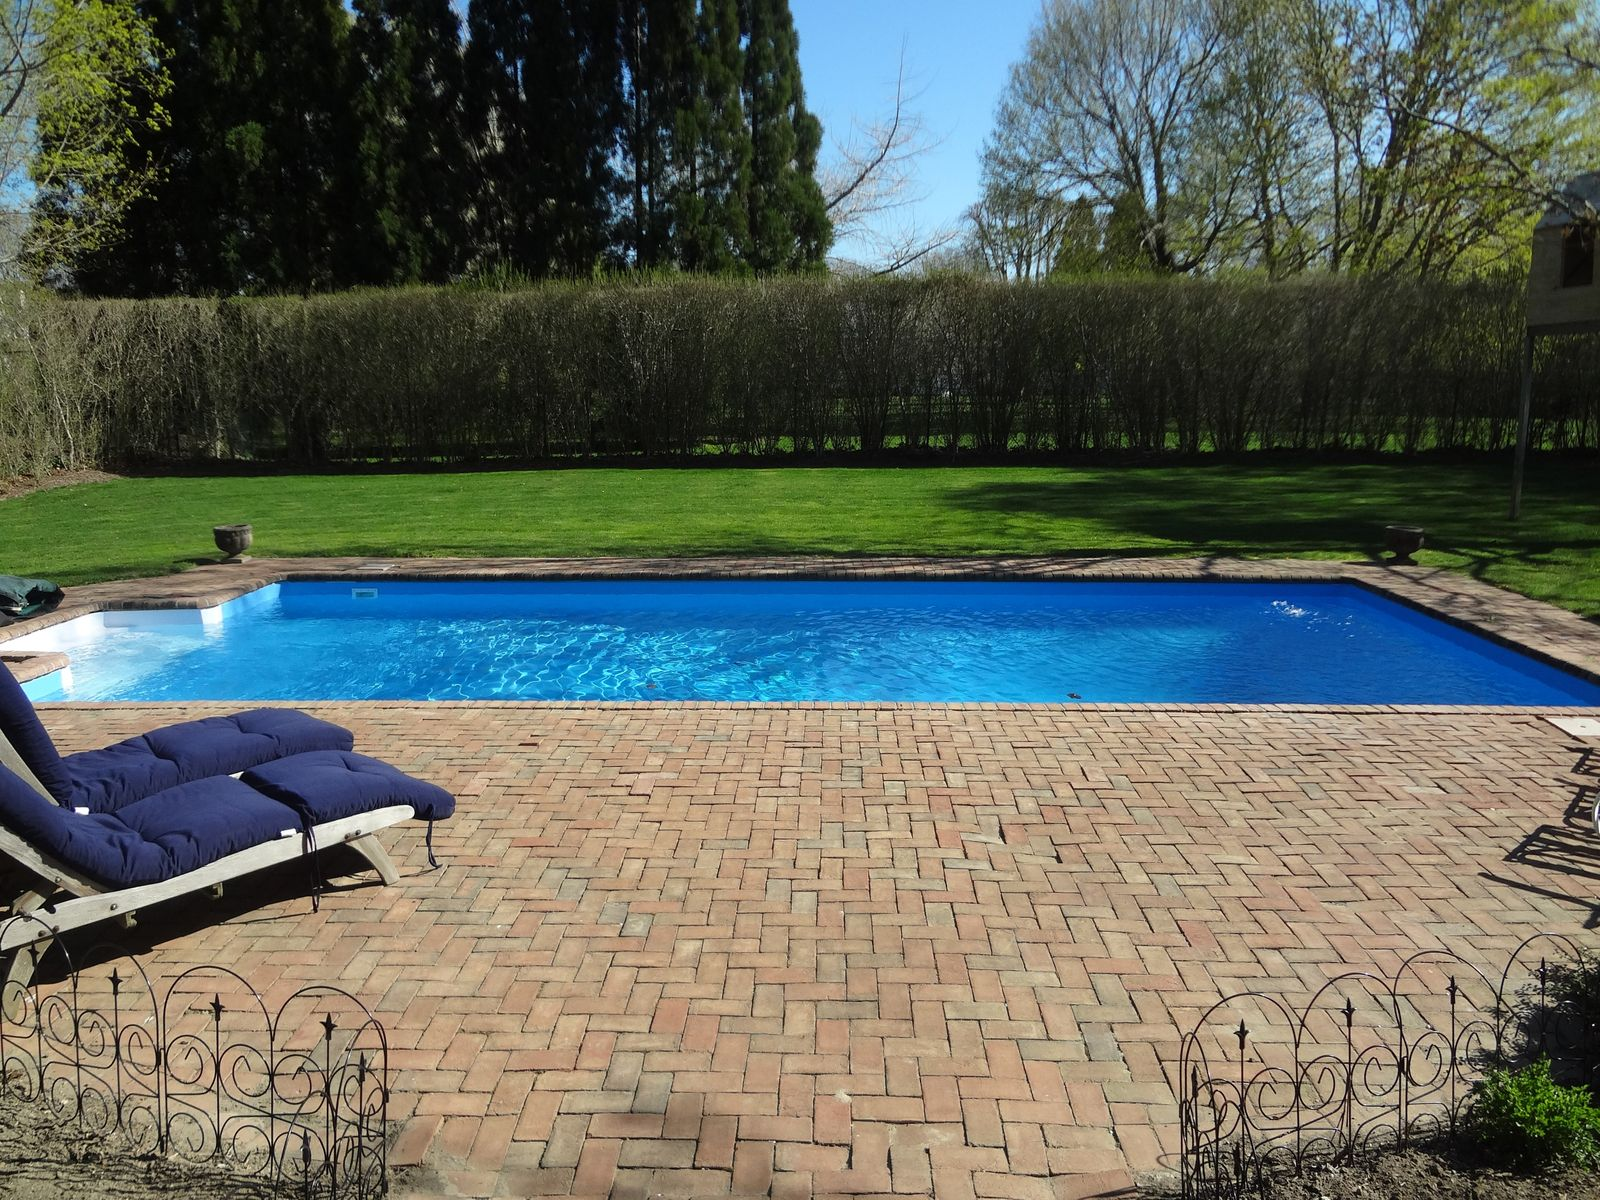 South of HWY with Private Pool, Southampton NY Single Family Home - Hamptons Real Estate